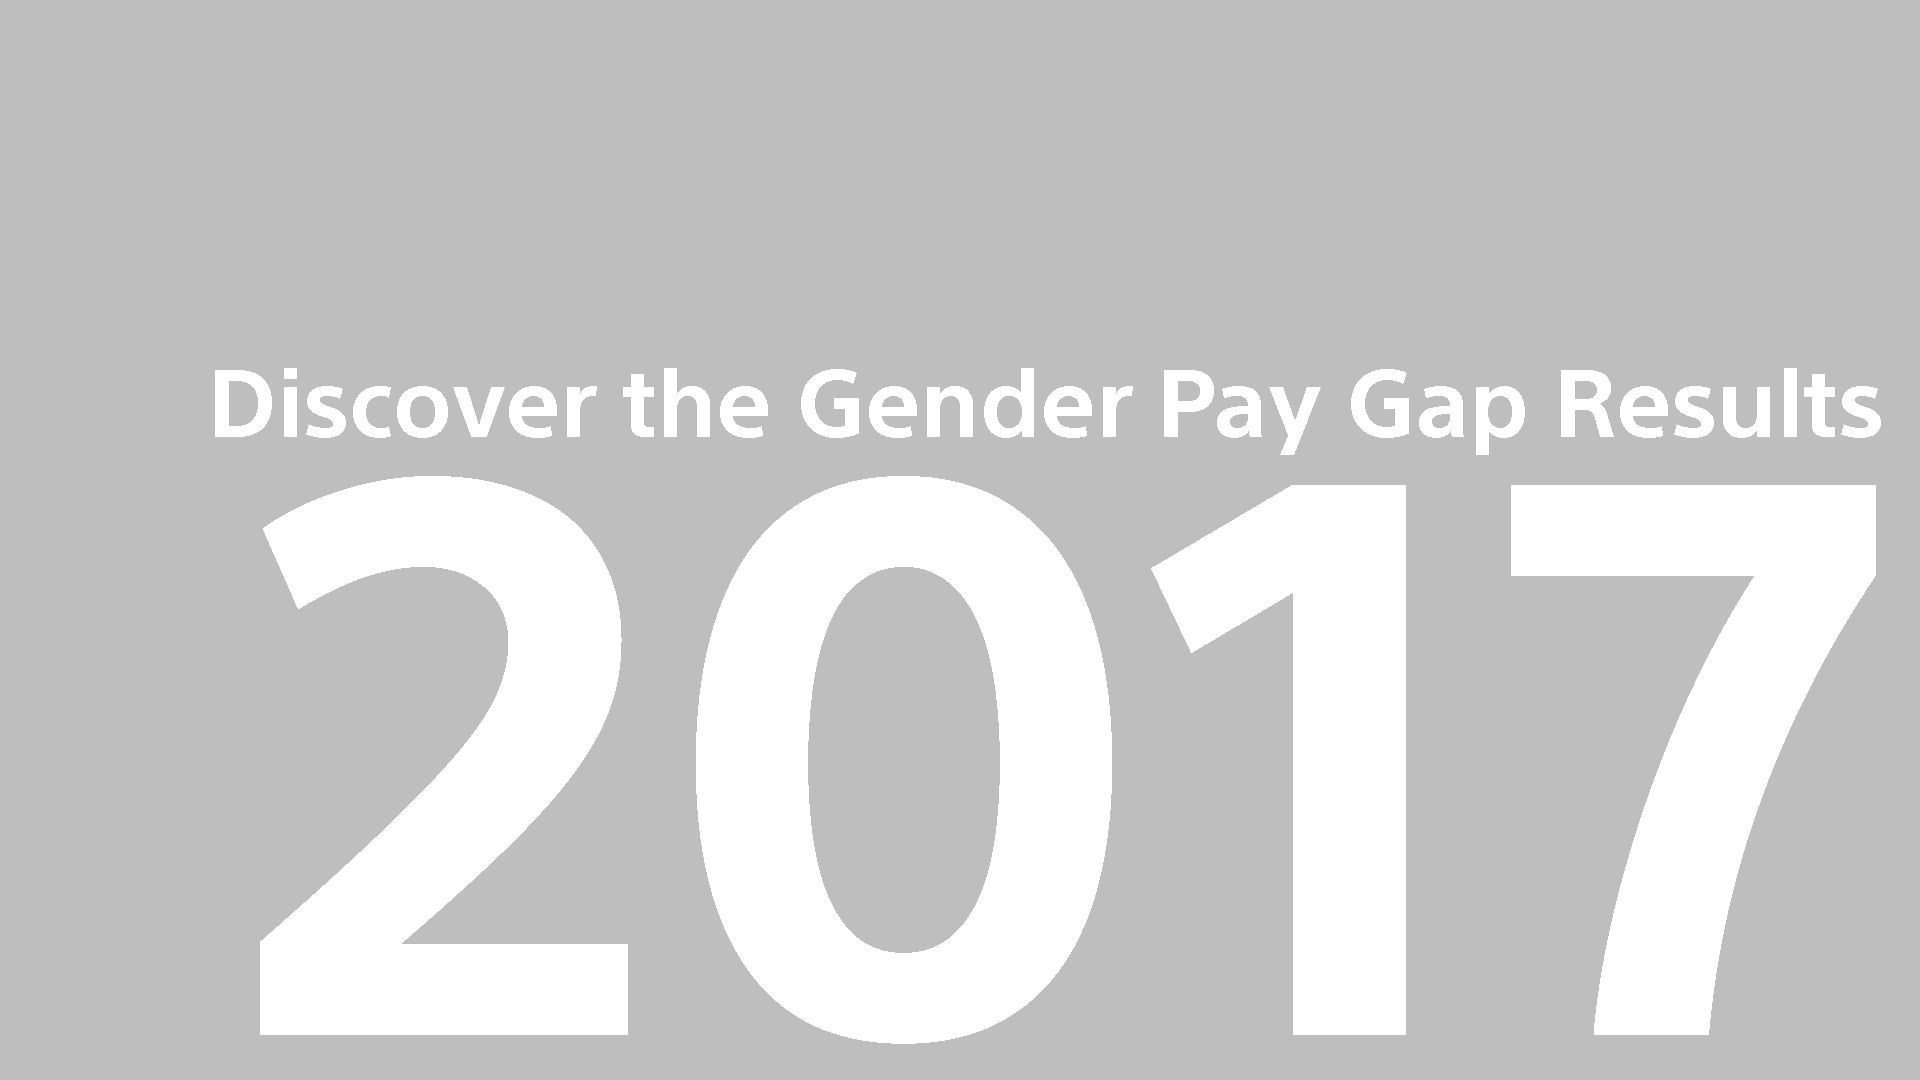 Gender Pay Gap Report UK 2017